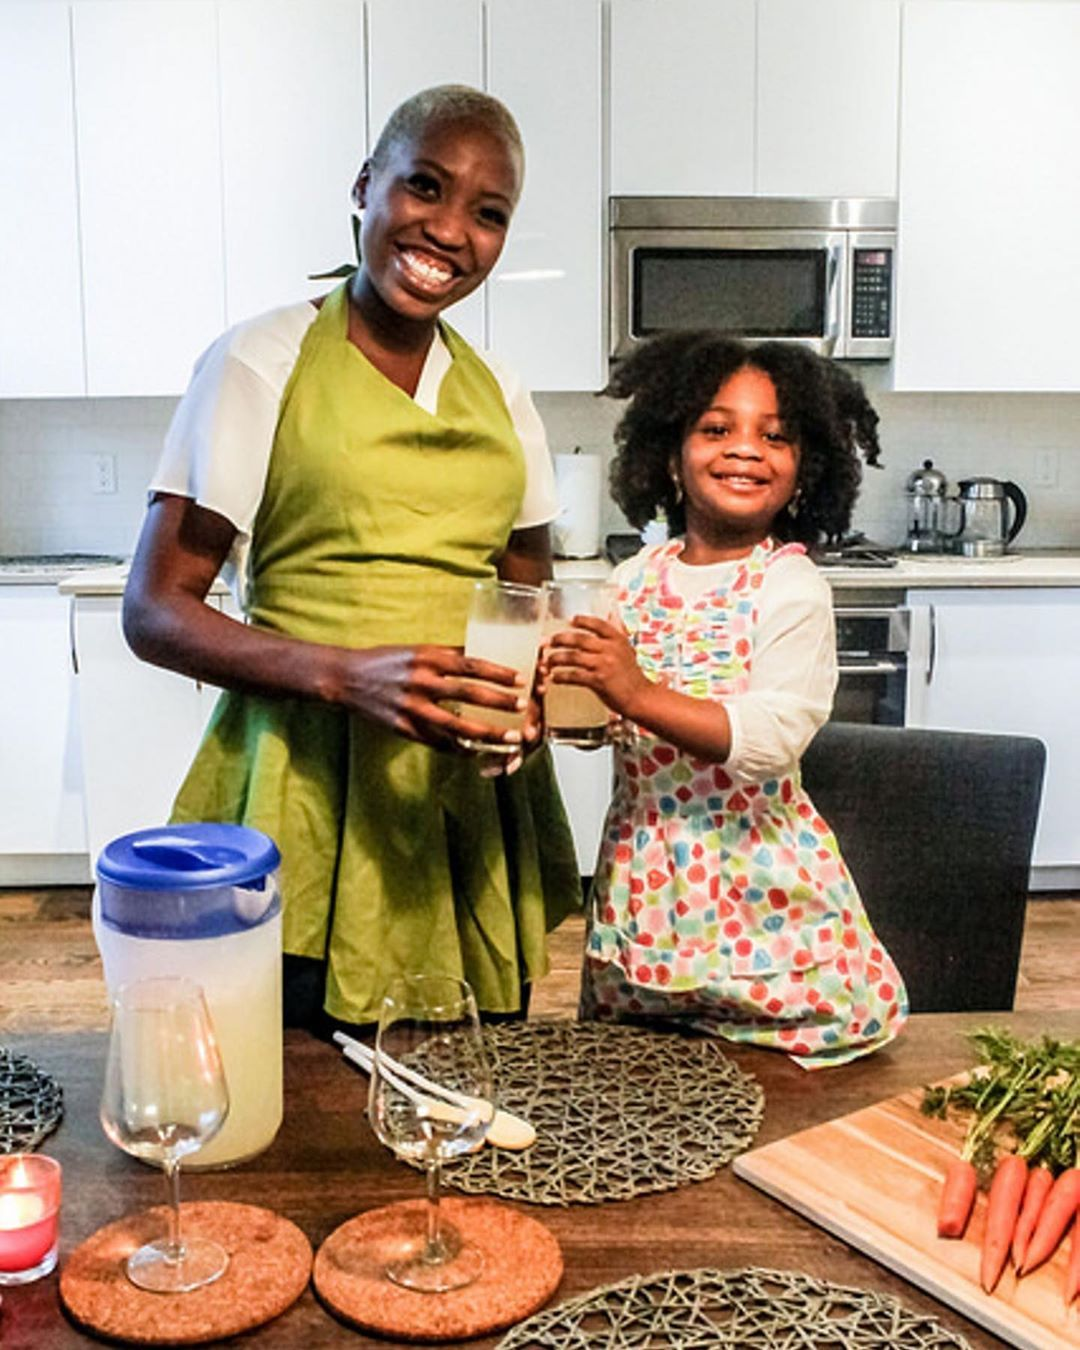 Our aprons make every generation smile! Thimble and Bodkin brings style and flair to those special moments with your loved ones.⠀ .⠀ ⠀ .⠀ ⠀ .⠀ ⠀ .⠀ ⠀ .⠀ ⠀ #Homemademodernhome #Apartmenttherapy #Theeverygirlcooks #Redbookmagazine #Bhghome #Myelectichome #bakingwithkids #mommyandme #kidsaprons #Handcrafted #wecook #webake #chicago #limitededition #dinnerparty #mysquad #homedecor #thimbleandbodkin #chicagofood #chicagomagazine #dinnerparty #everythingerica #retro #greatgift #coolgift #madeinchicago